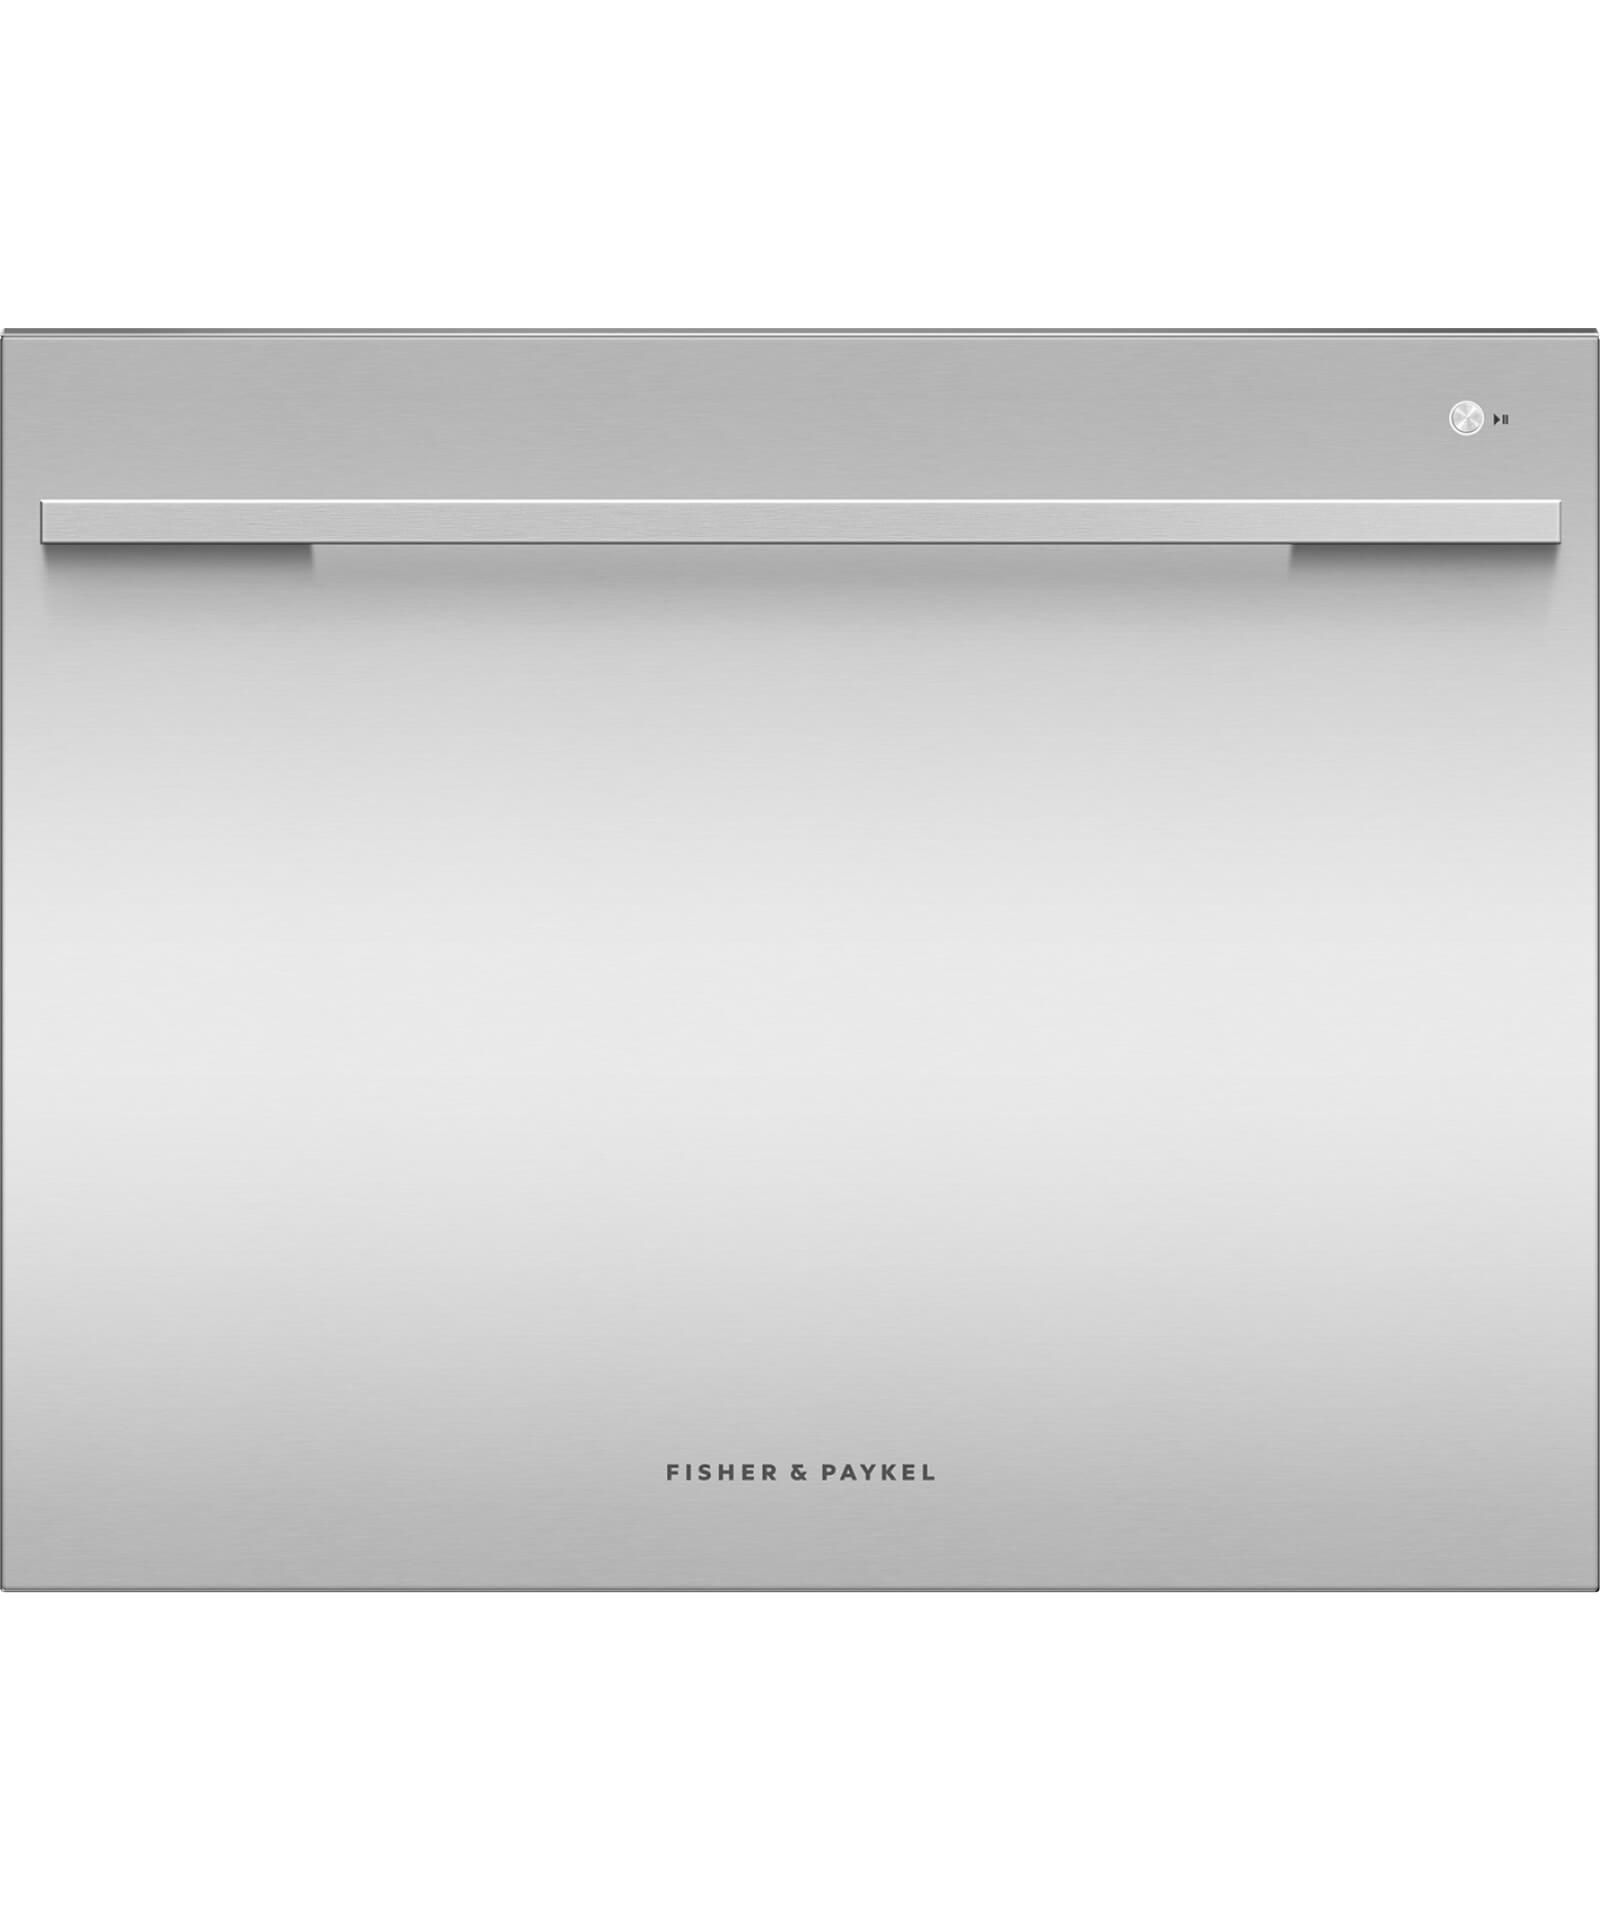 DD24SDFTX9_N - Tall Single DishDrawer™ Dishwasher incl Santize, Extra Dry and full flex racking - 81223